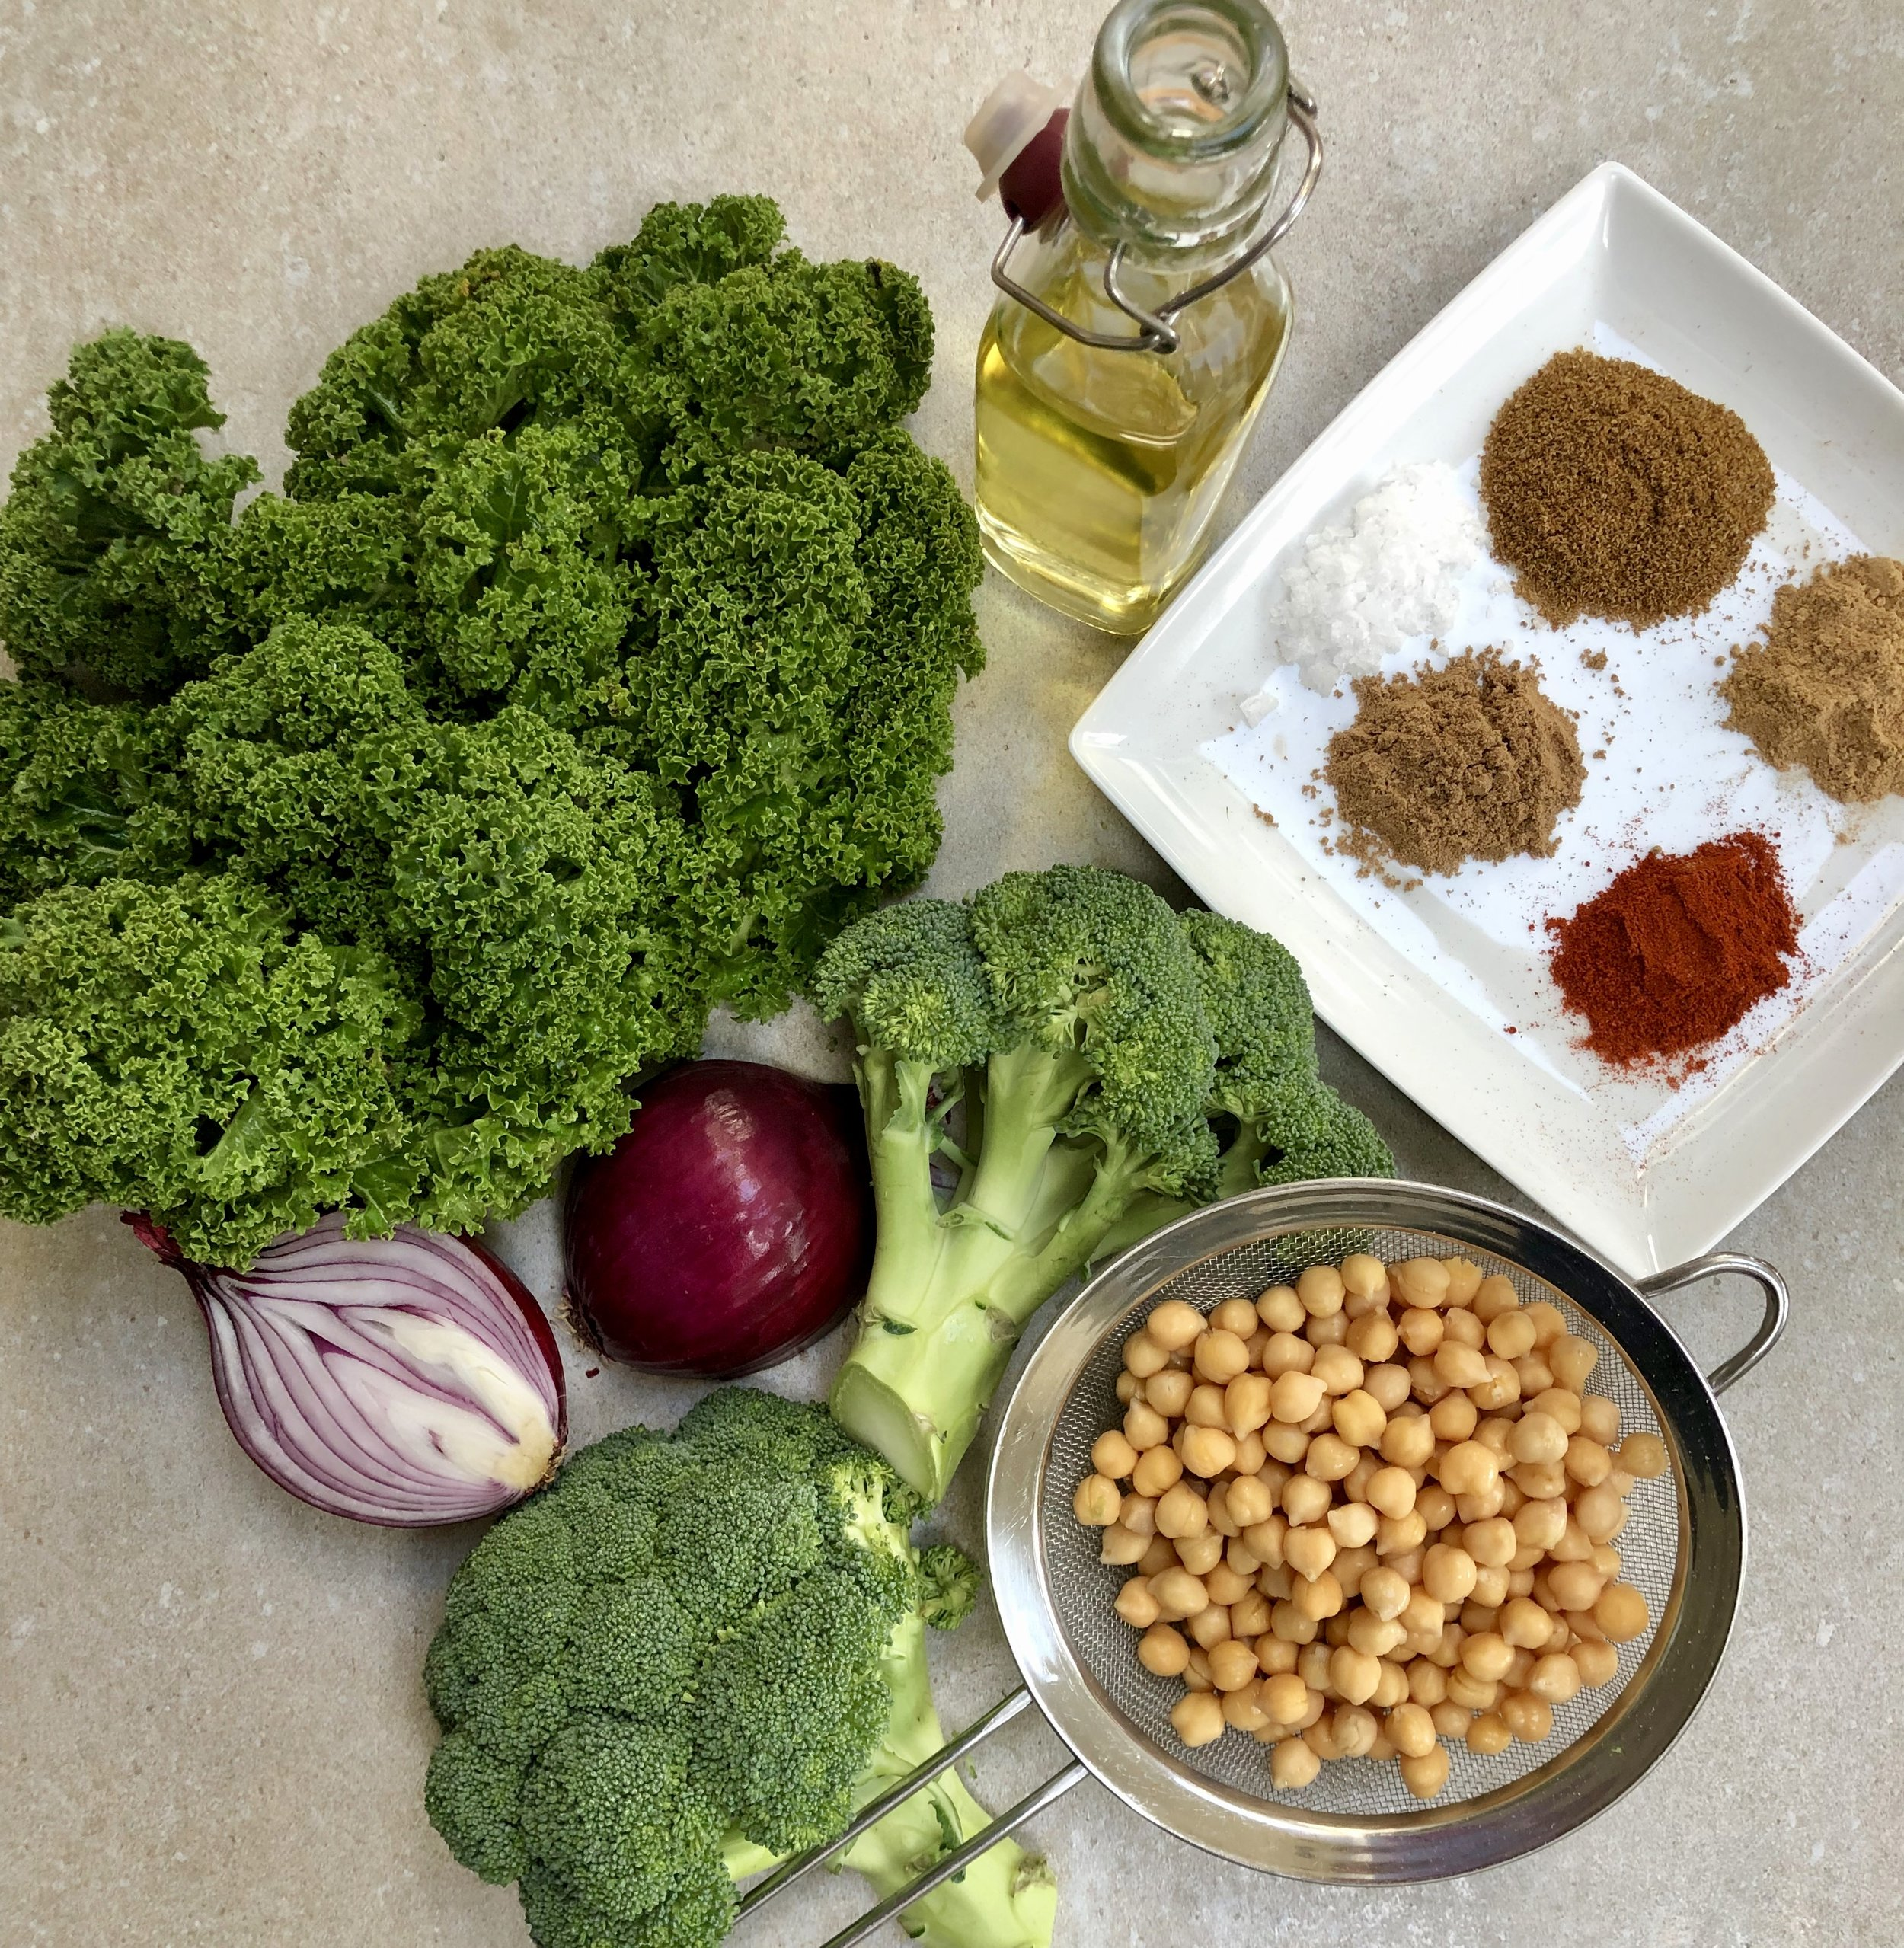 Ingredients for Roasted Broccoli and Kale with Chickpeas